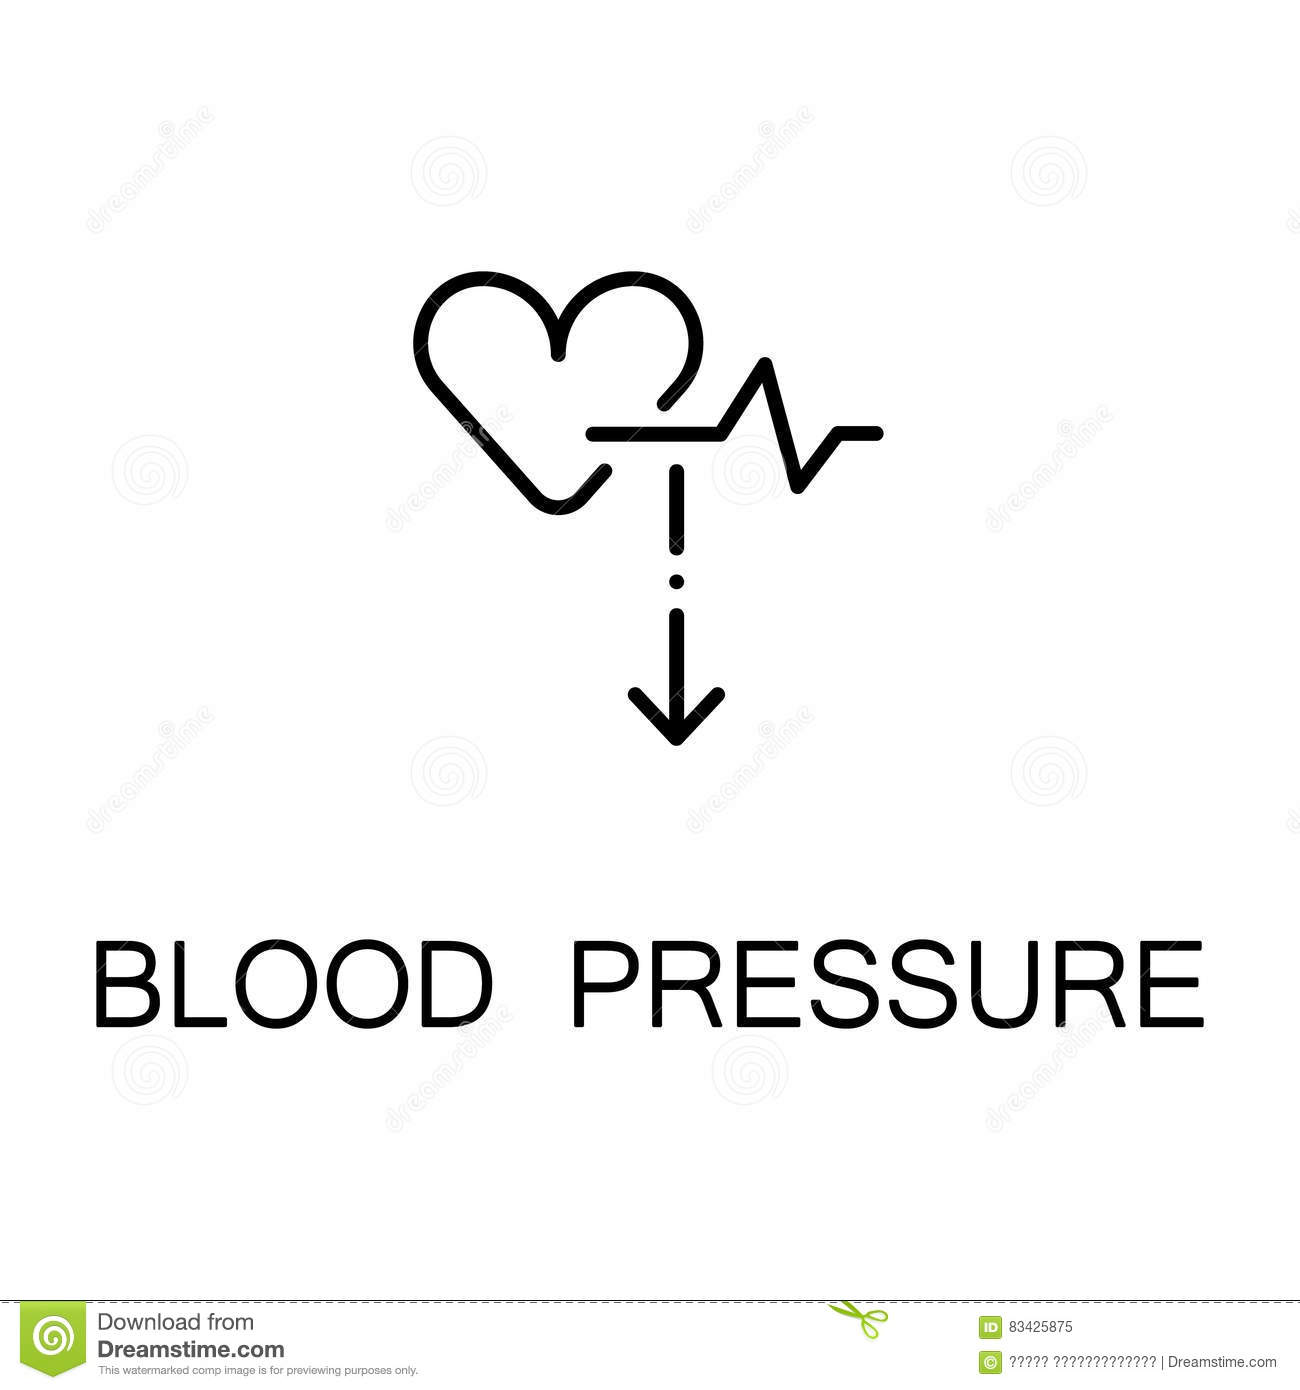 Heart flat icon single high city attorney cover letter blood pressure icon stock vector illustration of instrument blood pressure icon flat single high quality outline symbol illness injury web design mobile app buycottarizona Image collections